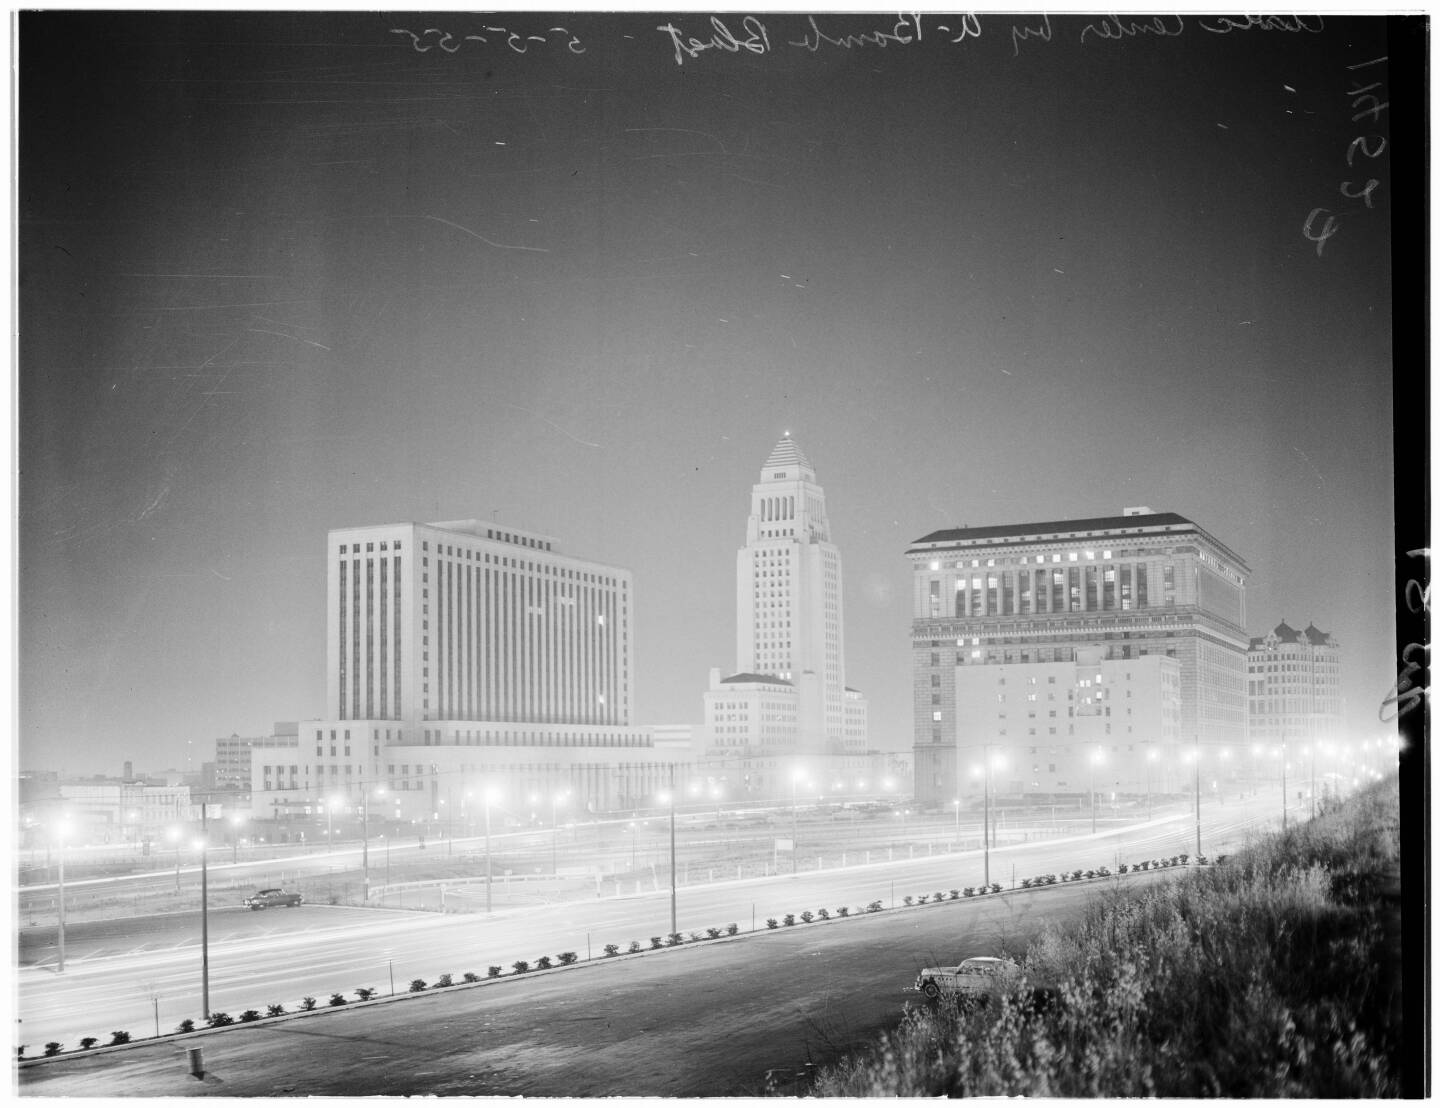 Los Angeles Civic Center buildings by Nevada A Bomb blast, 1955